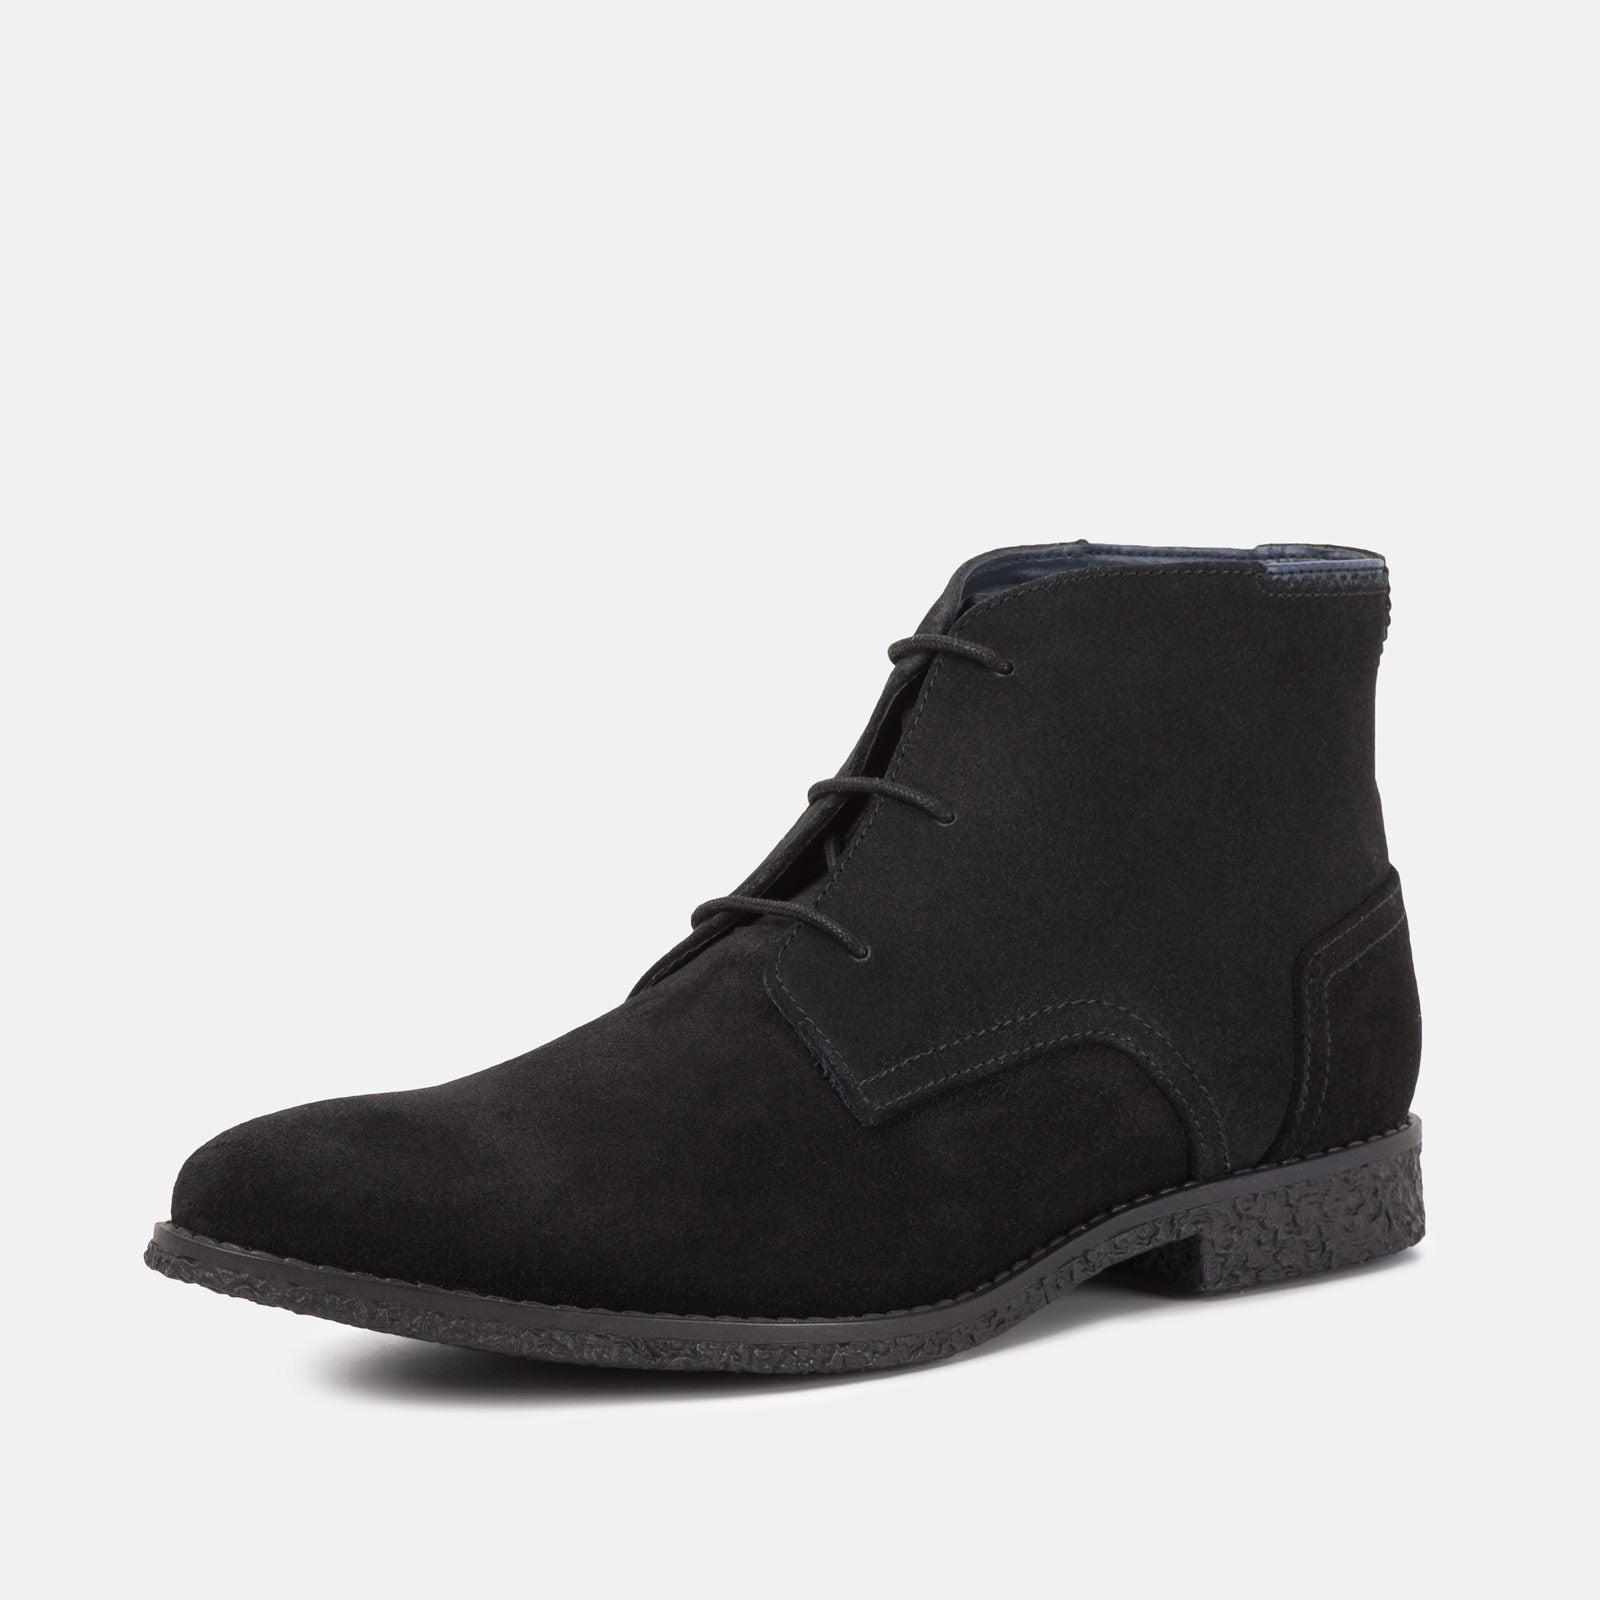 Goodwin Smith Footwear UK 6 / EURO 39 / US 7 / Black / Suede Mojave Black